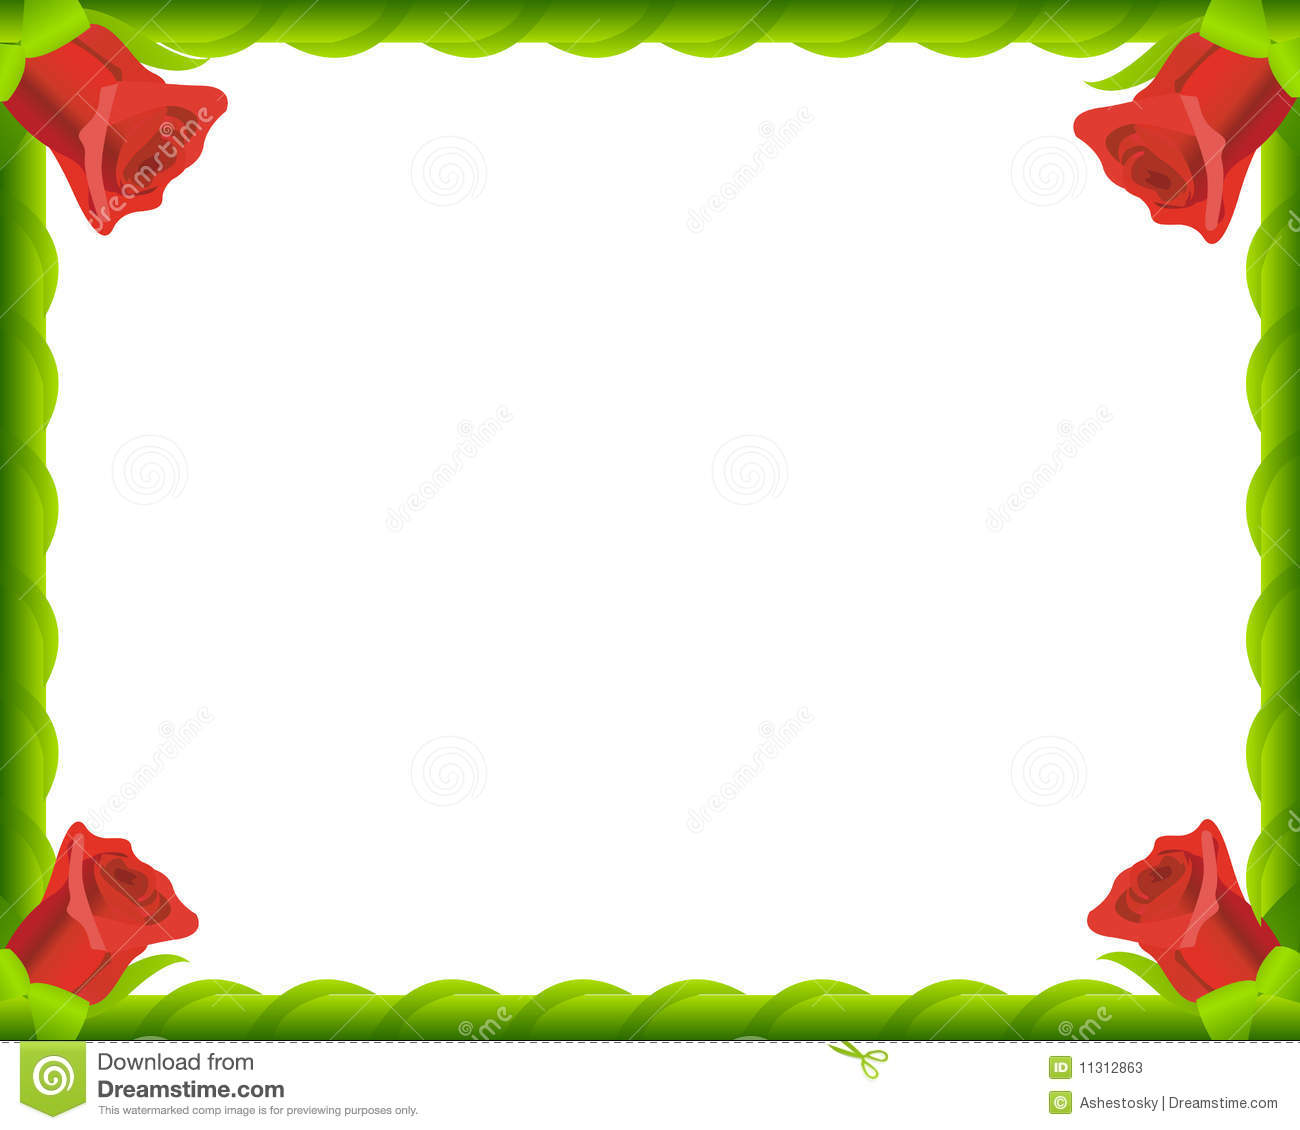 Red Roses Romantic Photo Frame Stock Vector - Illustration of green ...